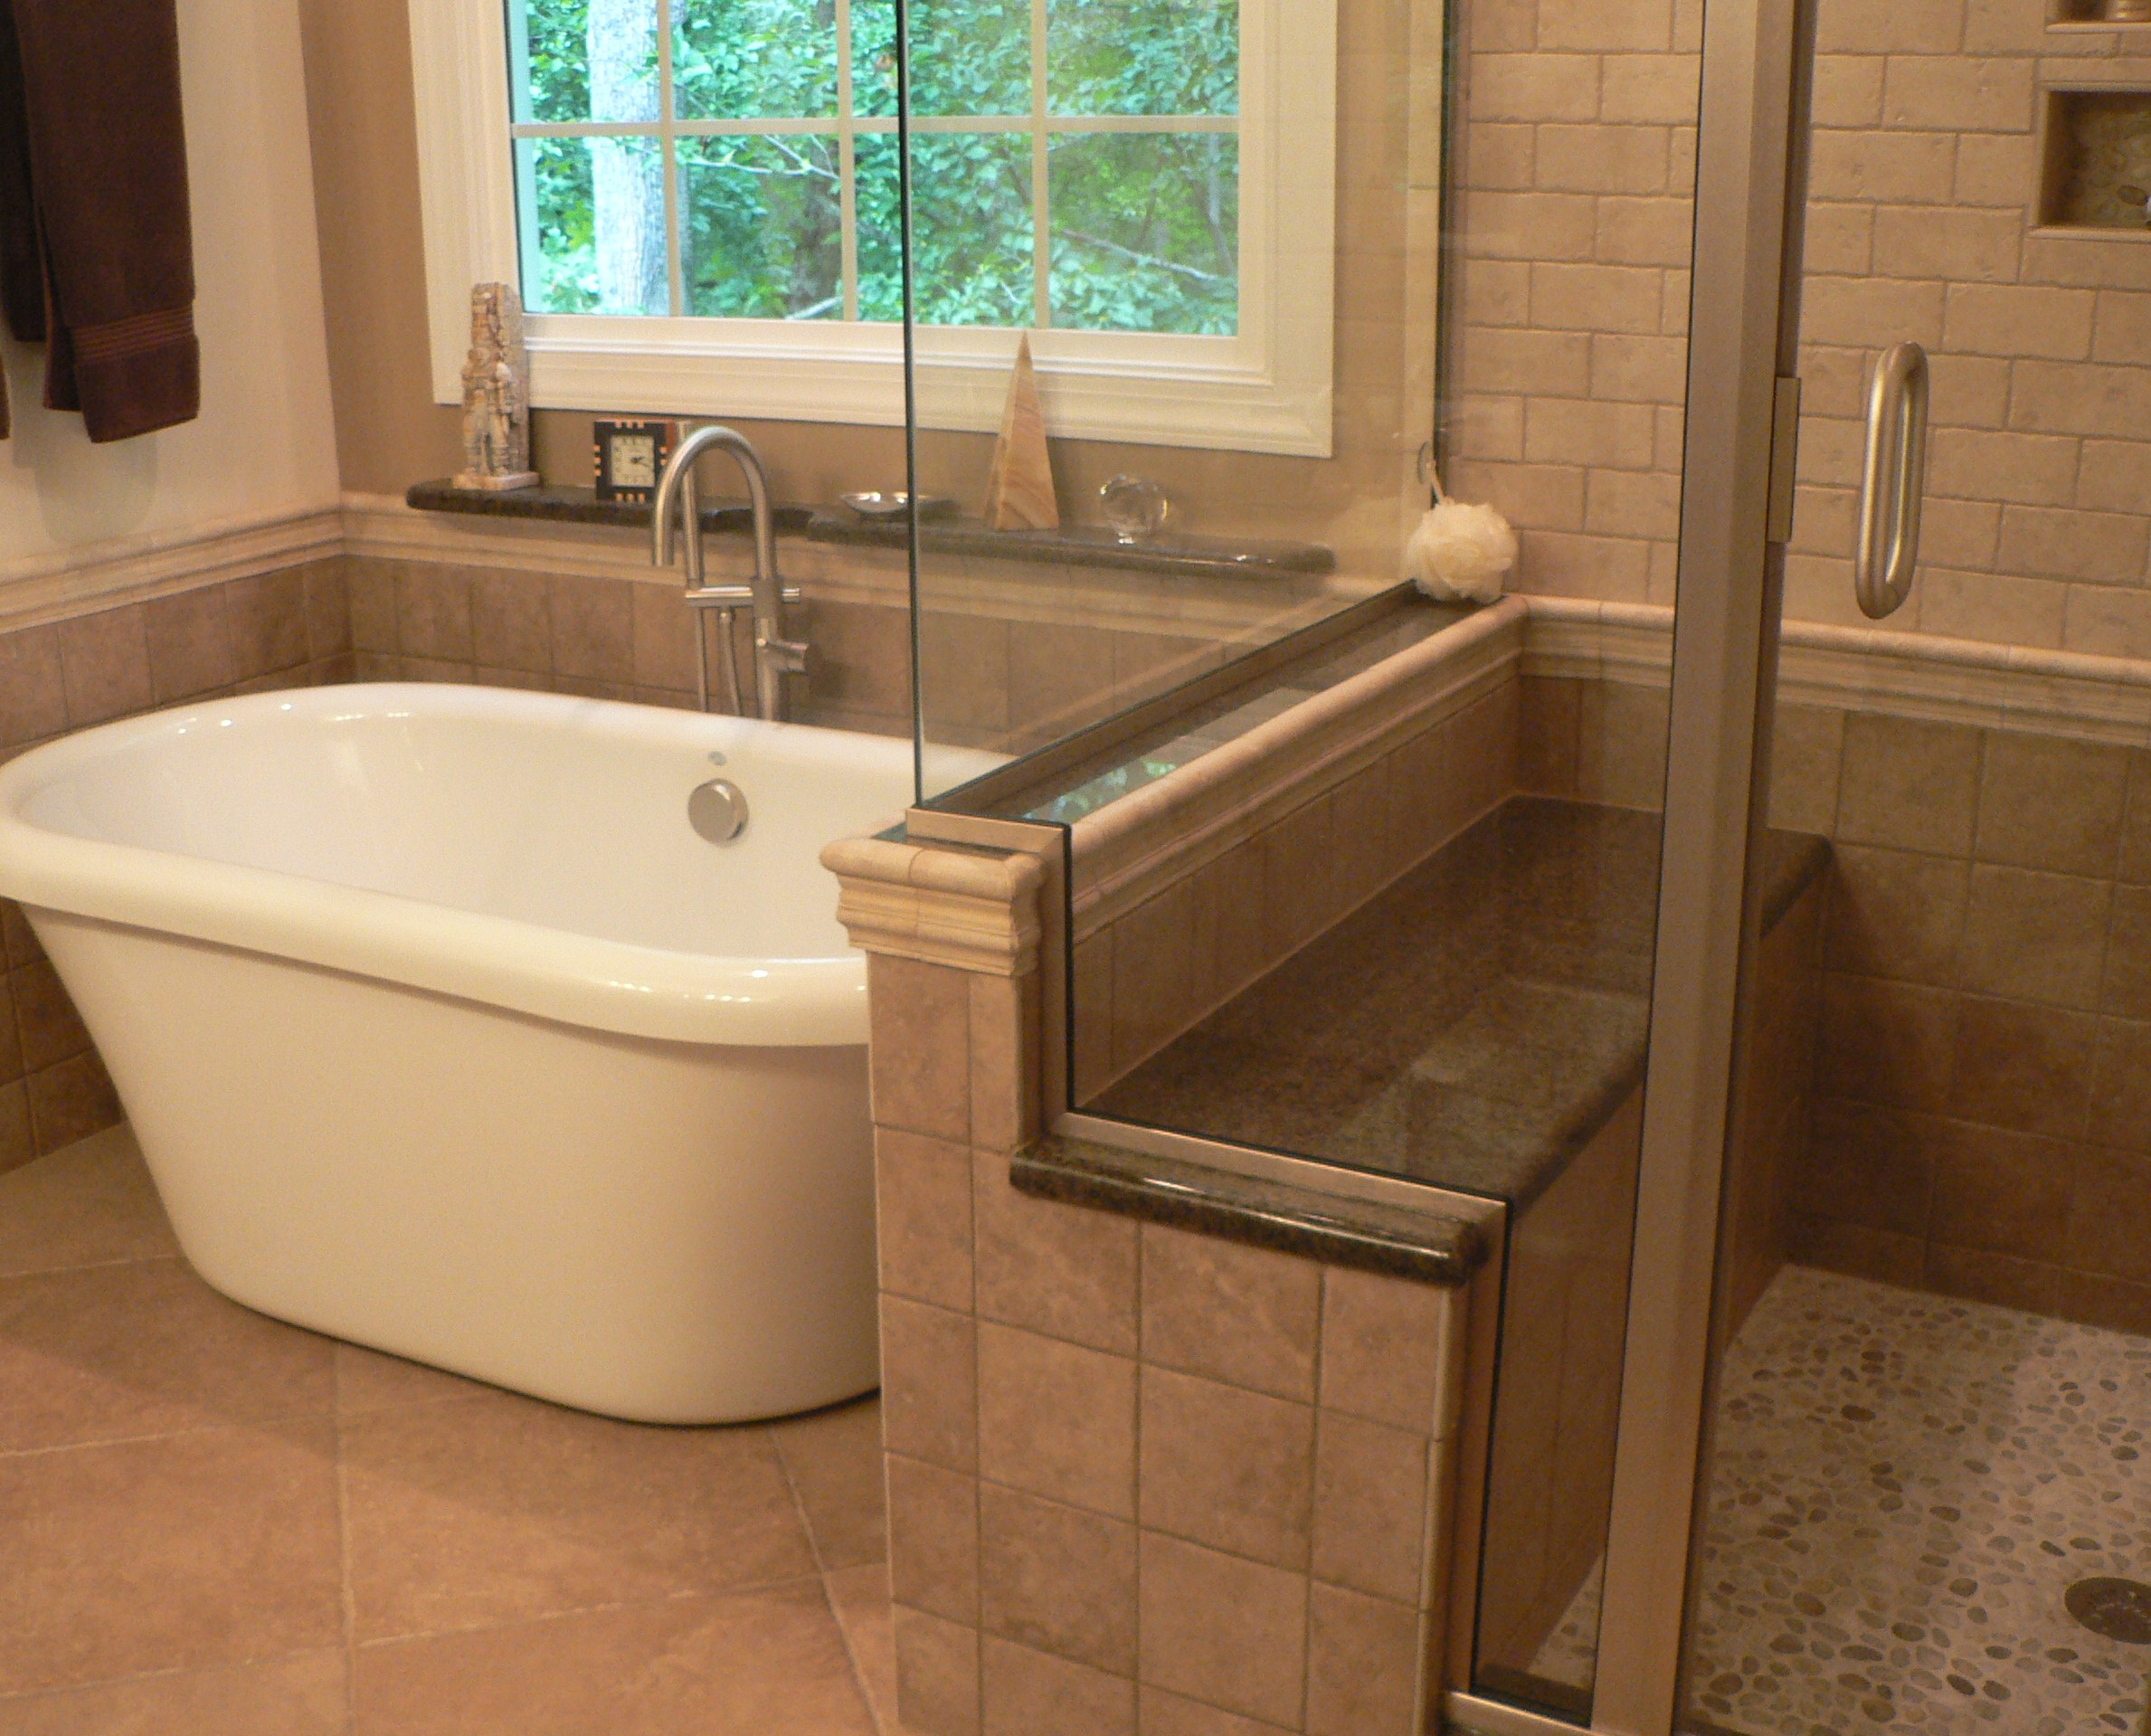 Bathroom Remodel Cost India remodel small bathroom. bathroom remodel tile ideas small bathroom